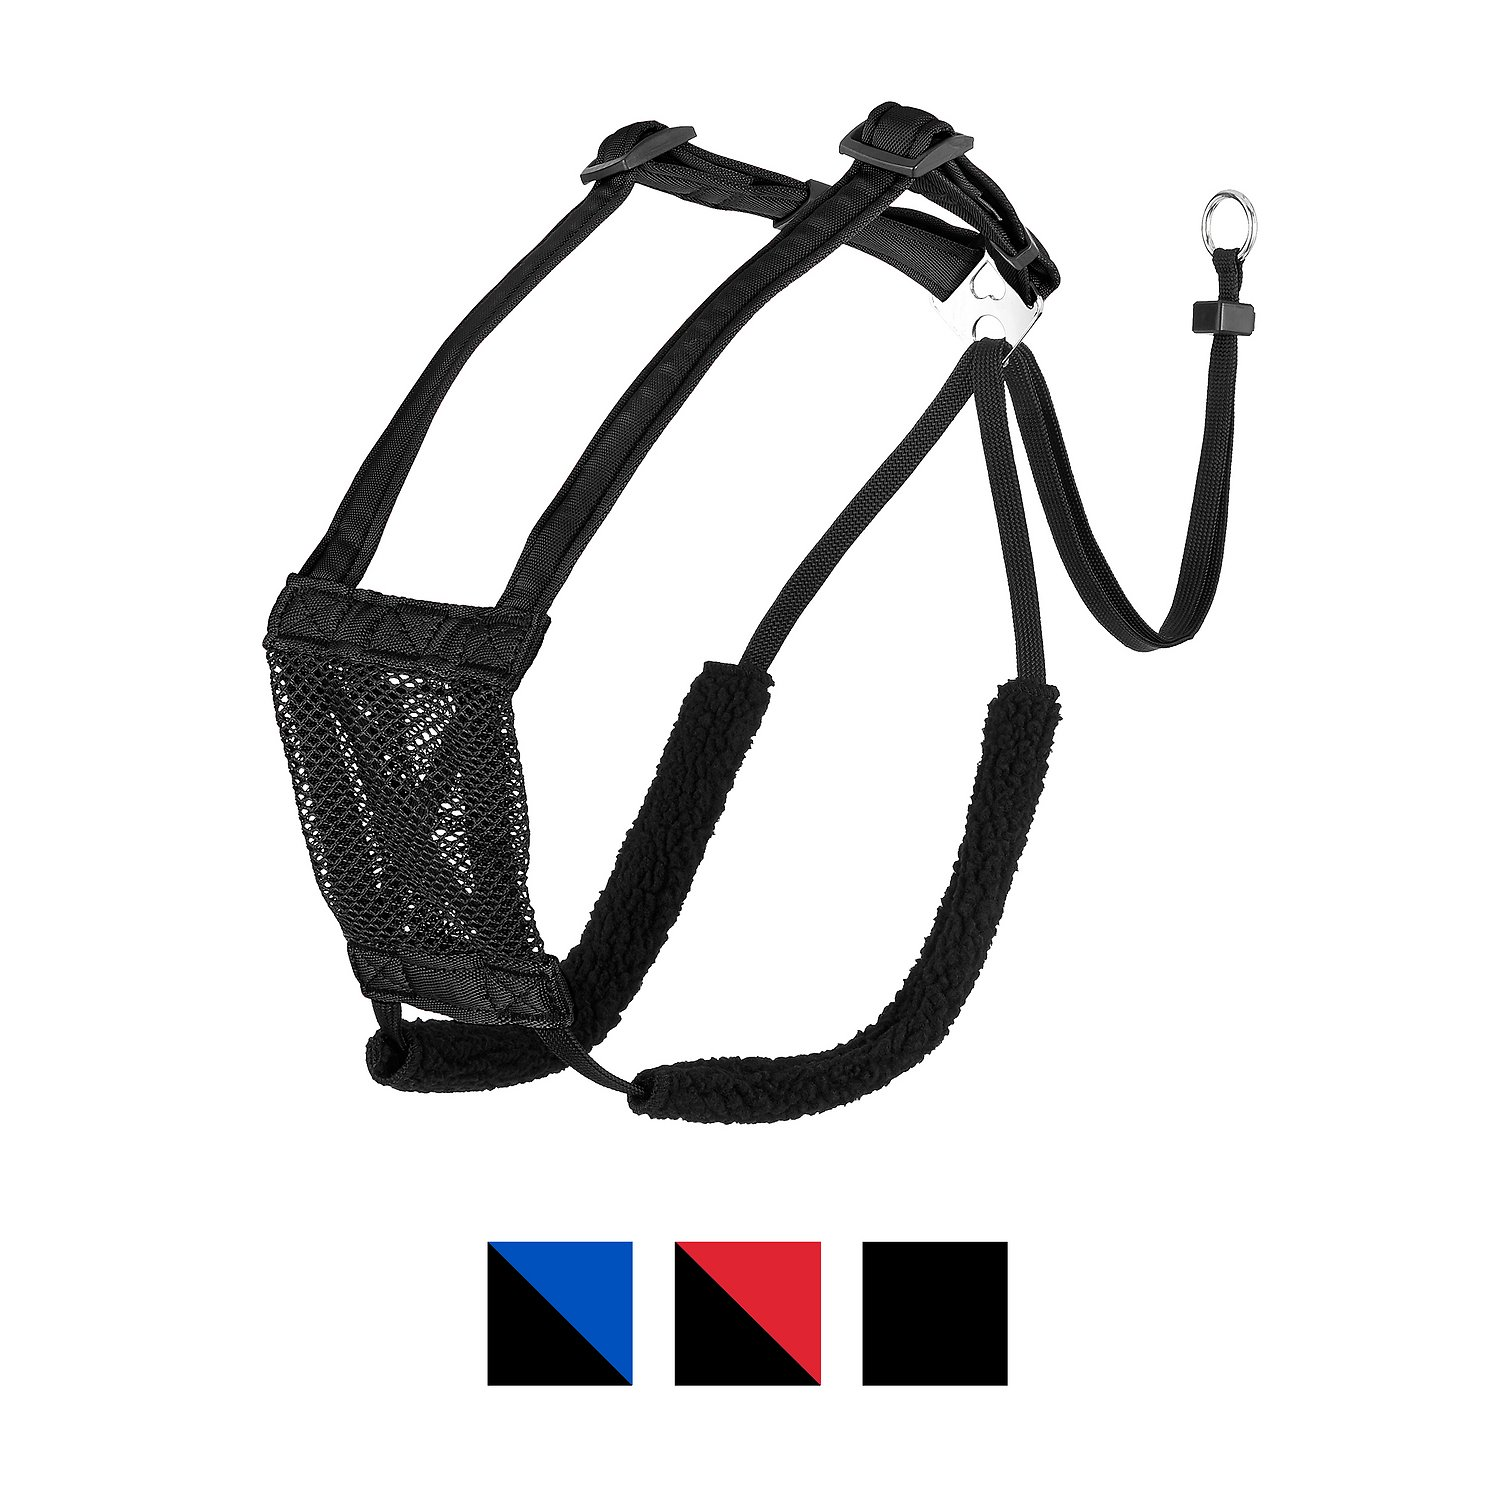 S Non-Pull Mesh Dog Harness, Black, Large/X-Large - Chewy.com